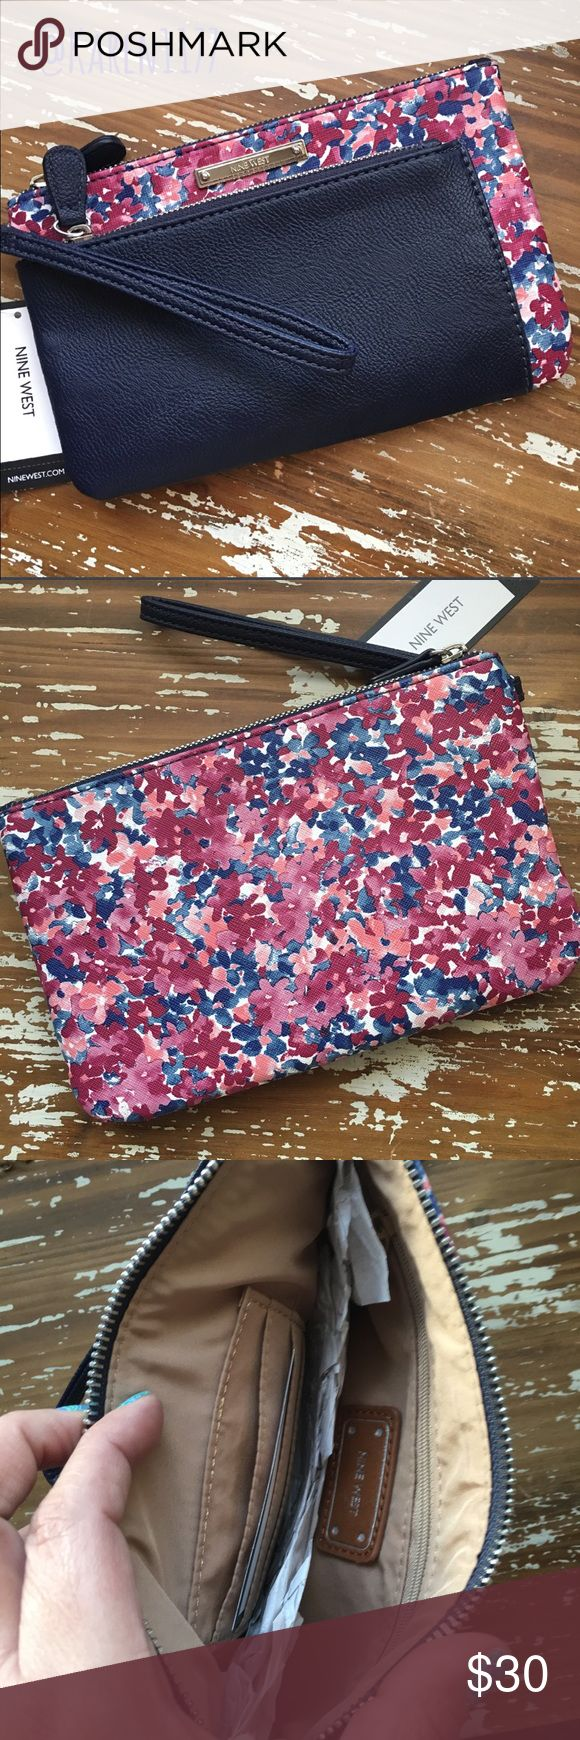 """Just InNine West Floral Misty Double Wristlet NEW Ready for Spring Nine West Double Wristlet Clutch. Navy Blue color with Purple, Pink & wines hues. Faux leather exterior, color-block detailing, zip top closures, wristlet loop. Fabric interior lining, interior zip pockets and card slots. 8 1/2"""" L x 5 1/4"""" H x 1/2"""" W Nine West Bags Clutches & Wristlets"""